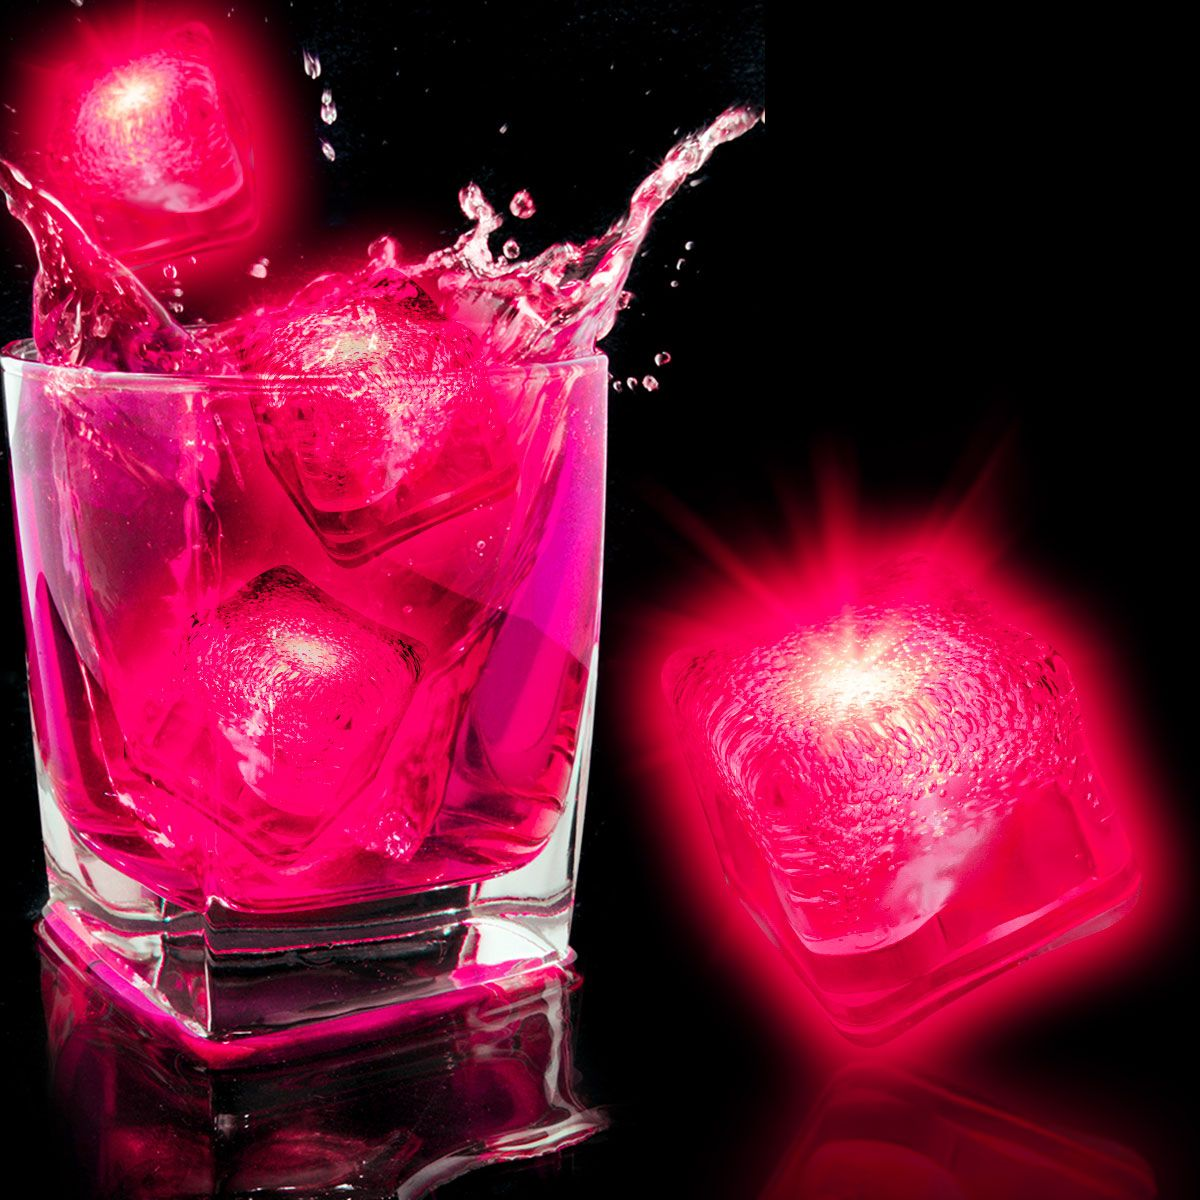 Neon Pink LED and Light-Up Ice Cube-12 pack LIT977DZ